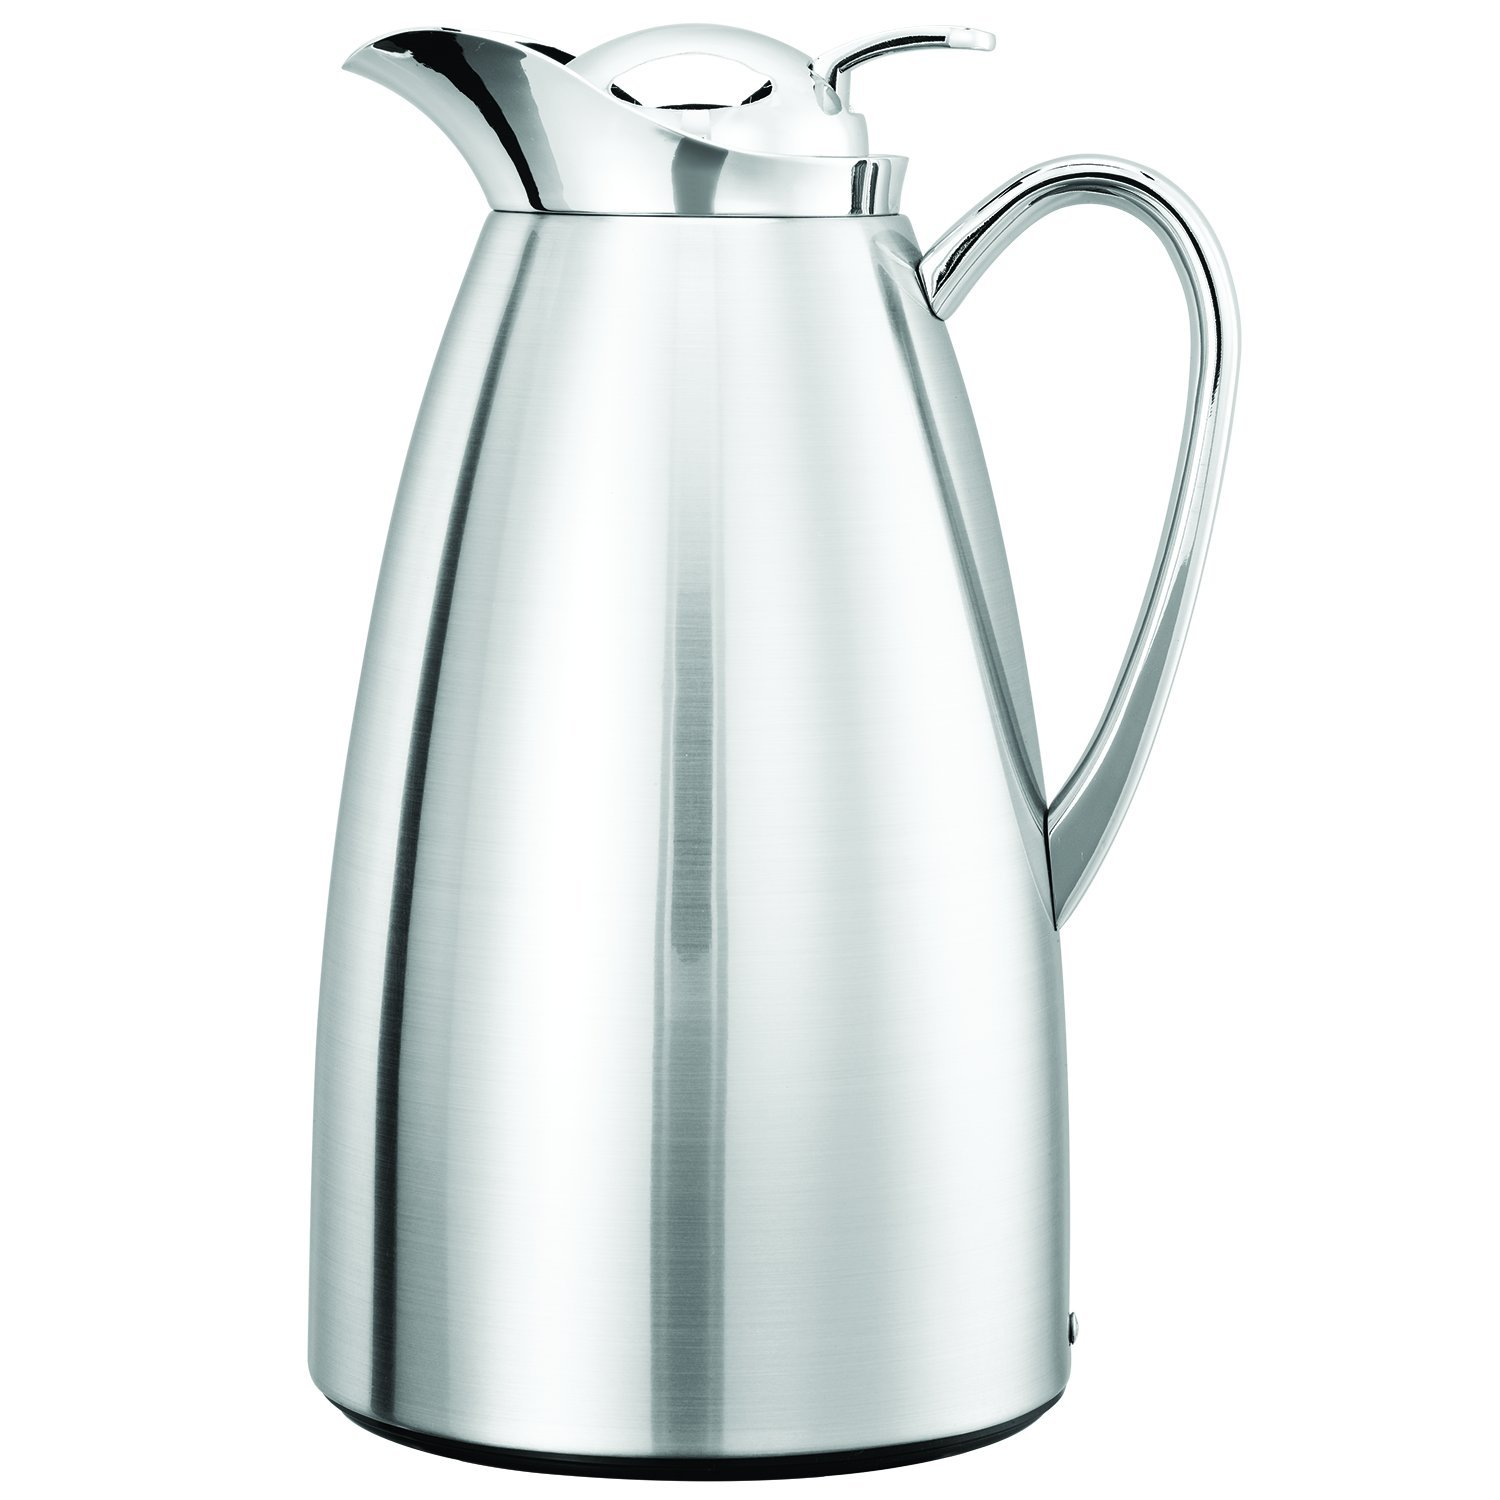 Service Ideas CJZS1CH Carafe, Stainless Steel Lined, All Polished, 1 L